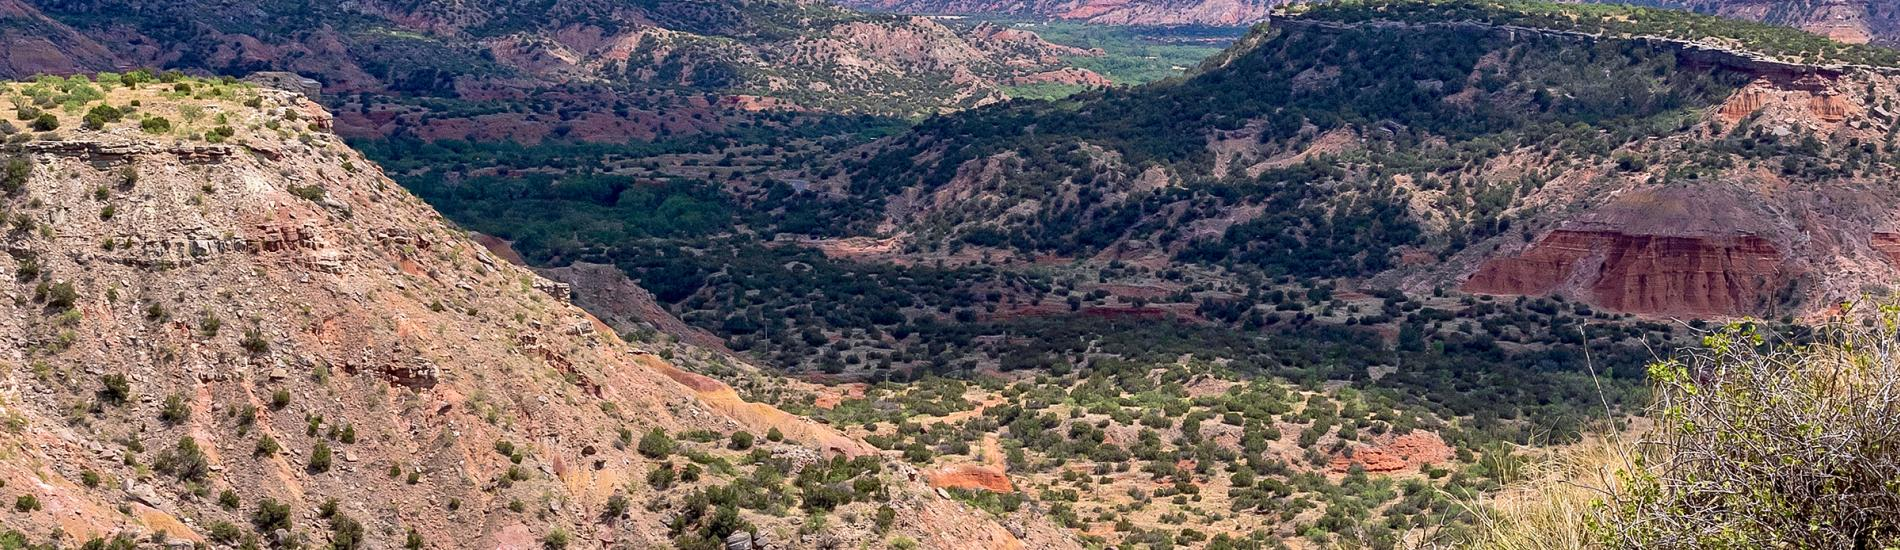 Premiere of the Panhandle: Texas State Parks